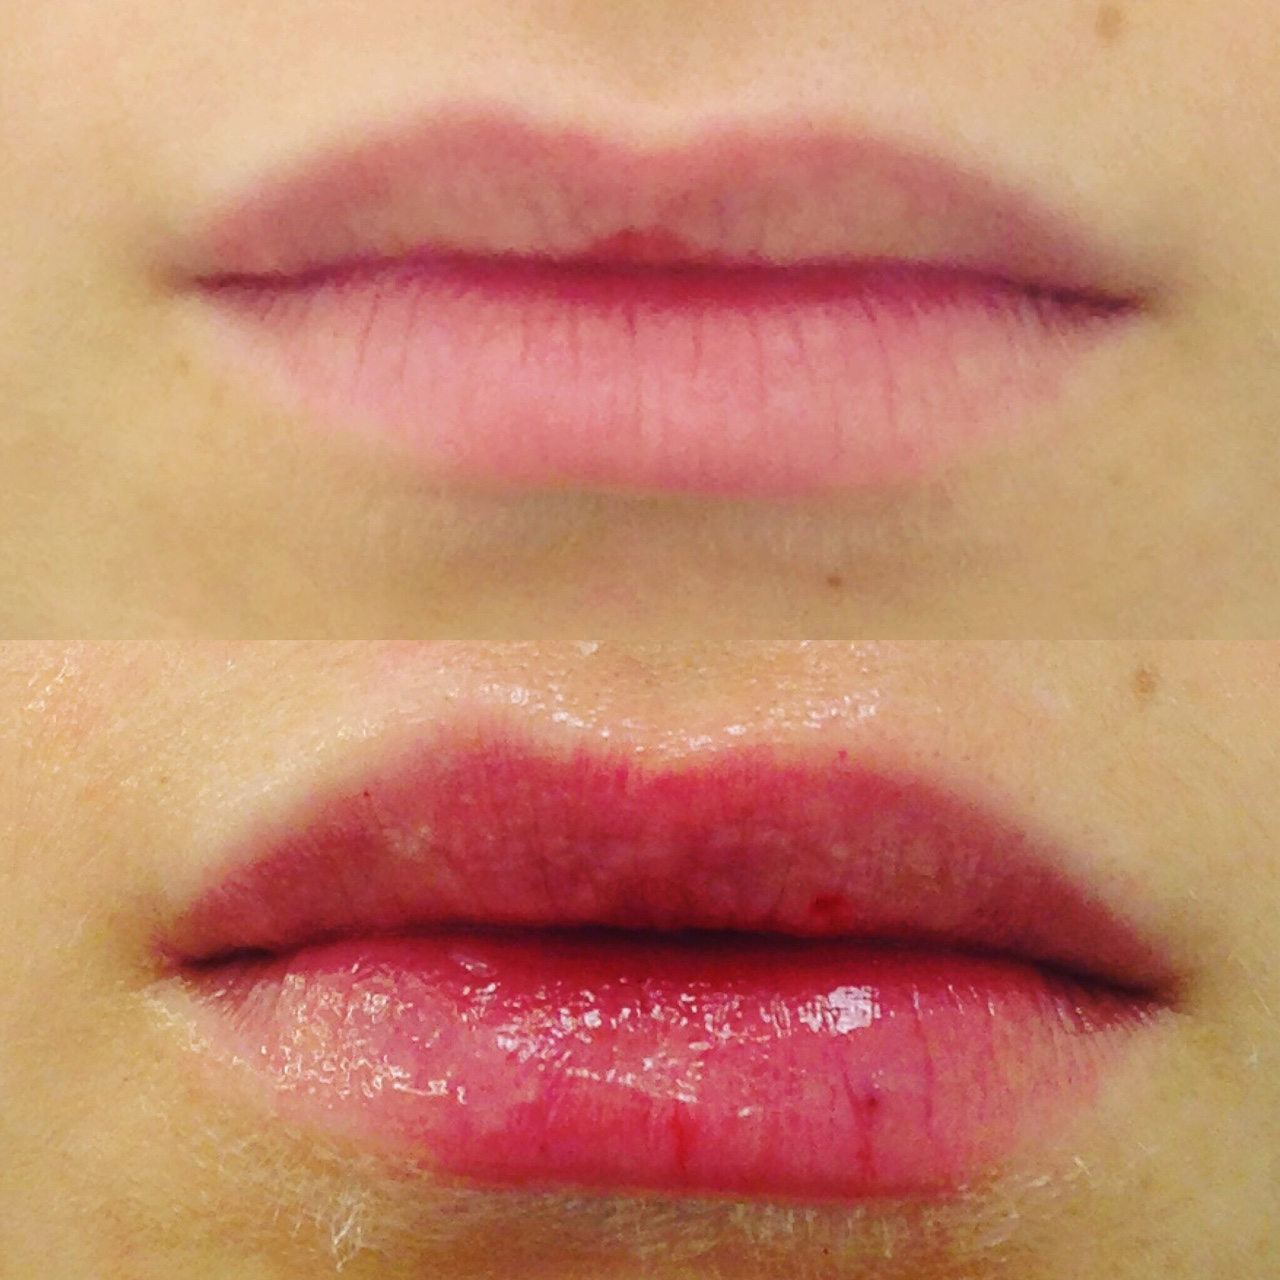 Actual patient of Dr. Devgan, before and after lip augmentation with Juvederm, New York City